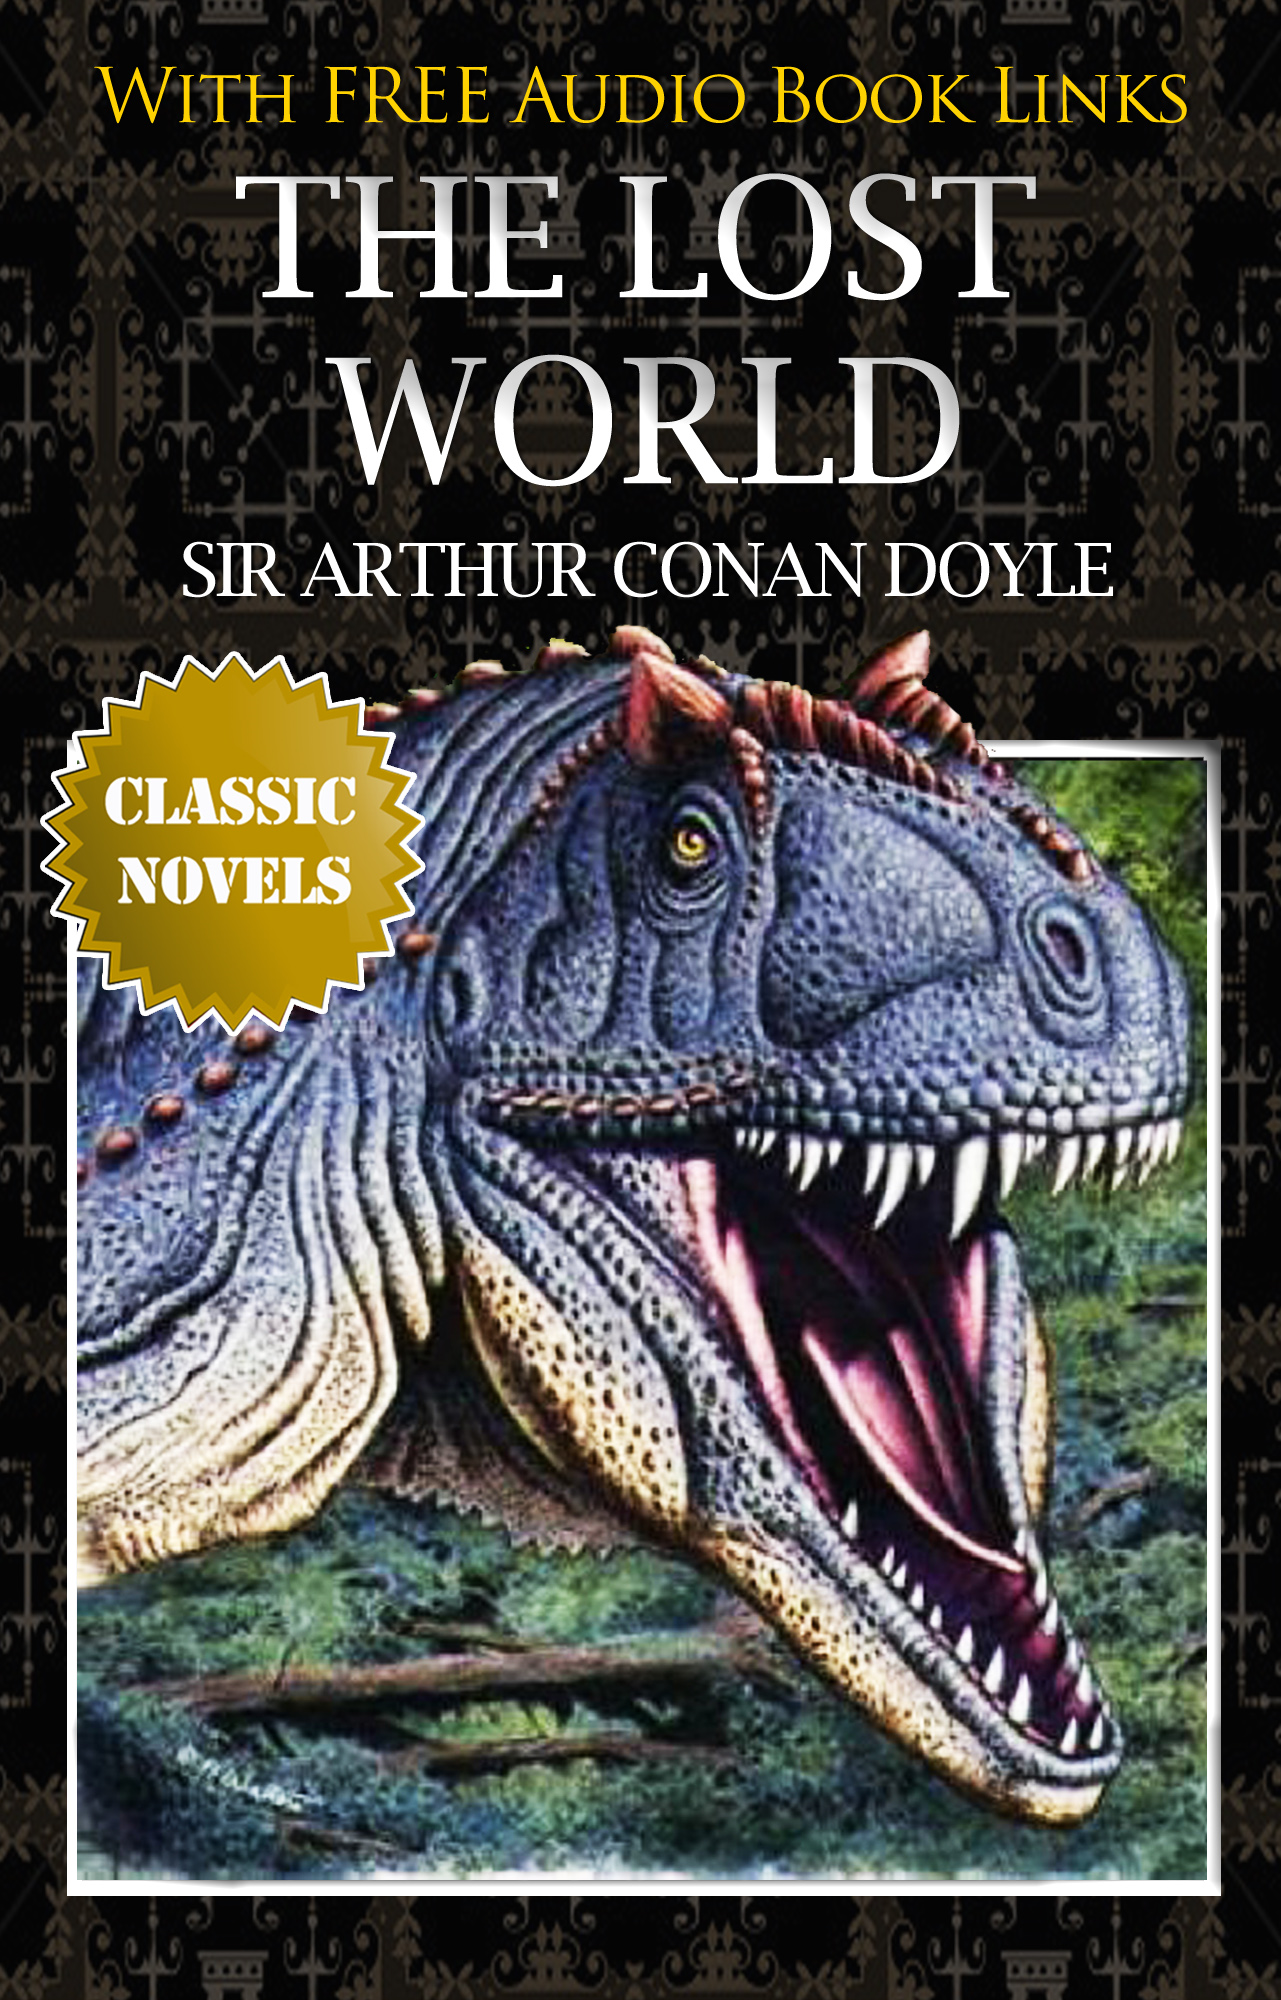 THE LOST WORLD Classic Novels: New Illustrated By: SIR ARTHUR CONAN DOYLE